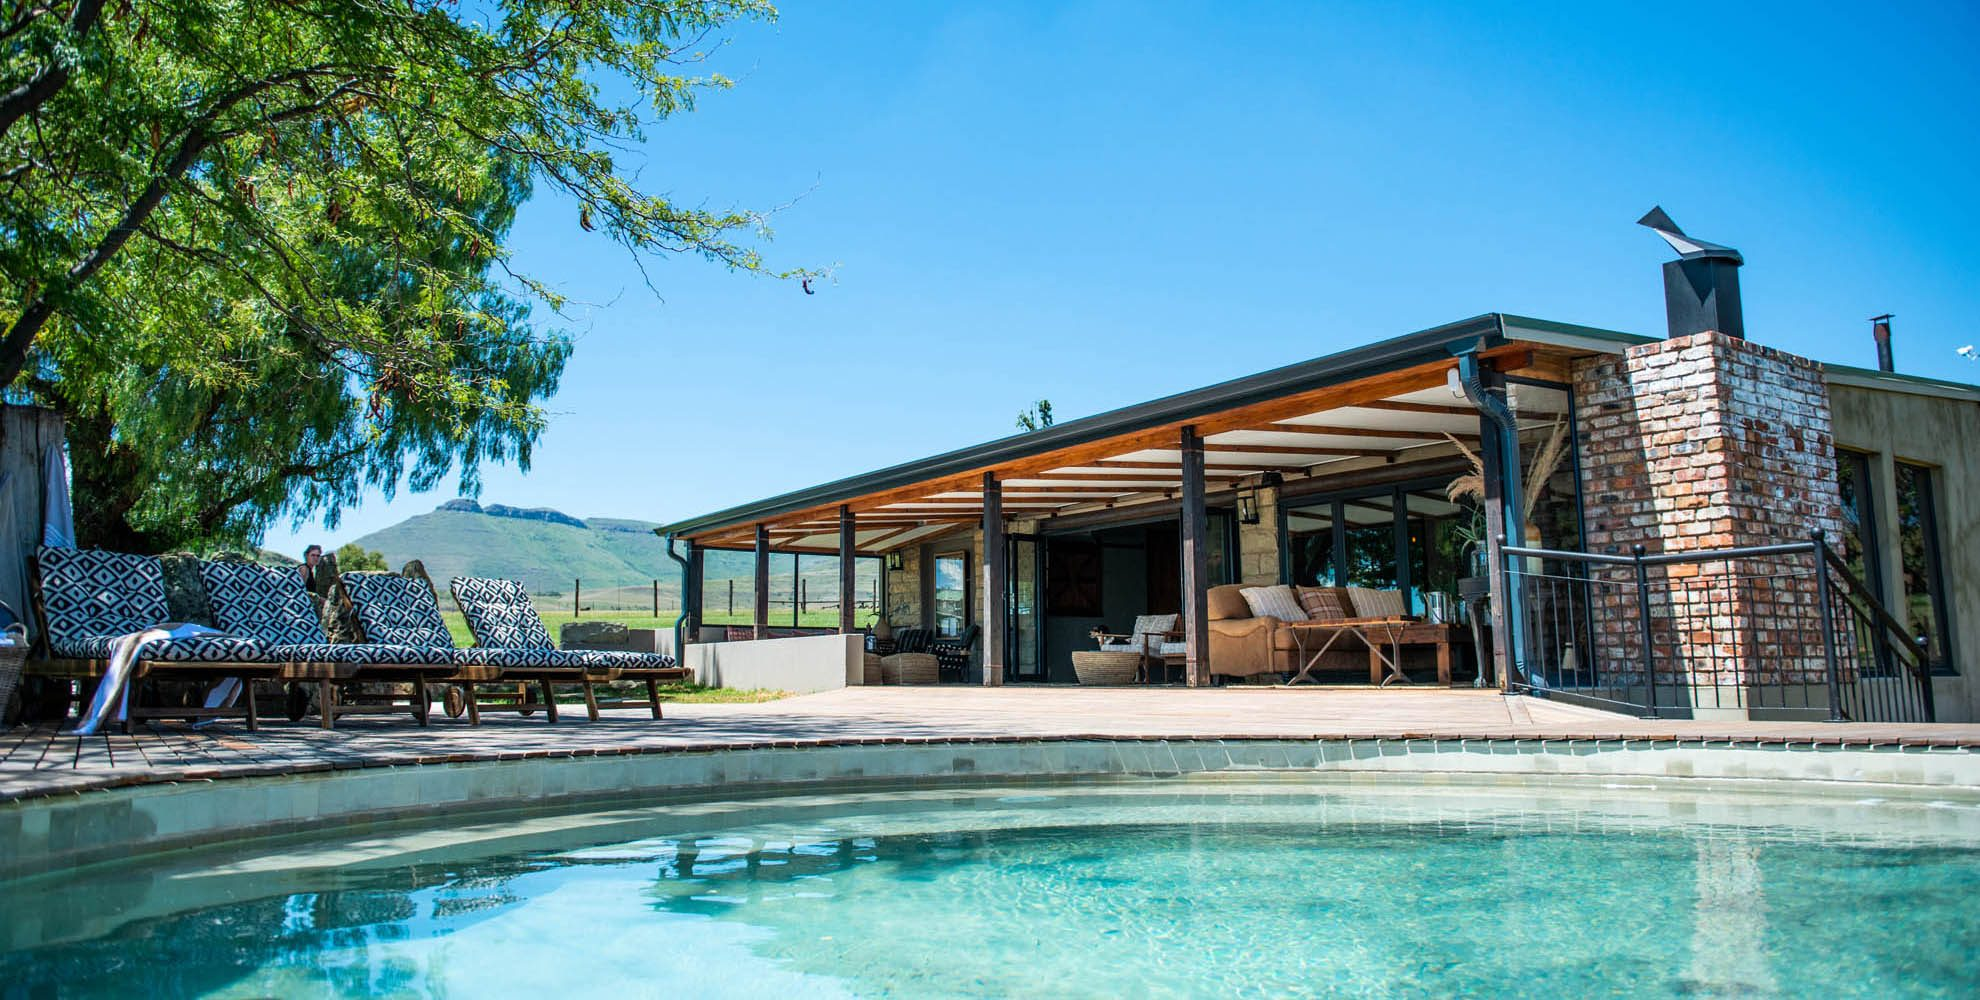 Introducing Bokpoort Mountain Lodge Total privacy, exclusively yours!